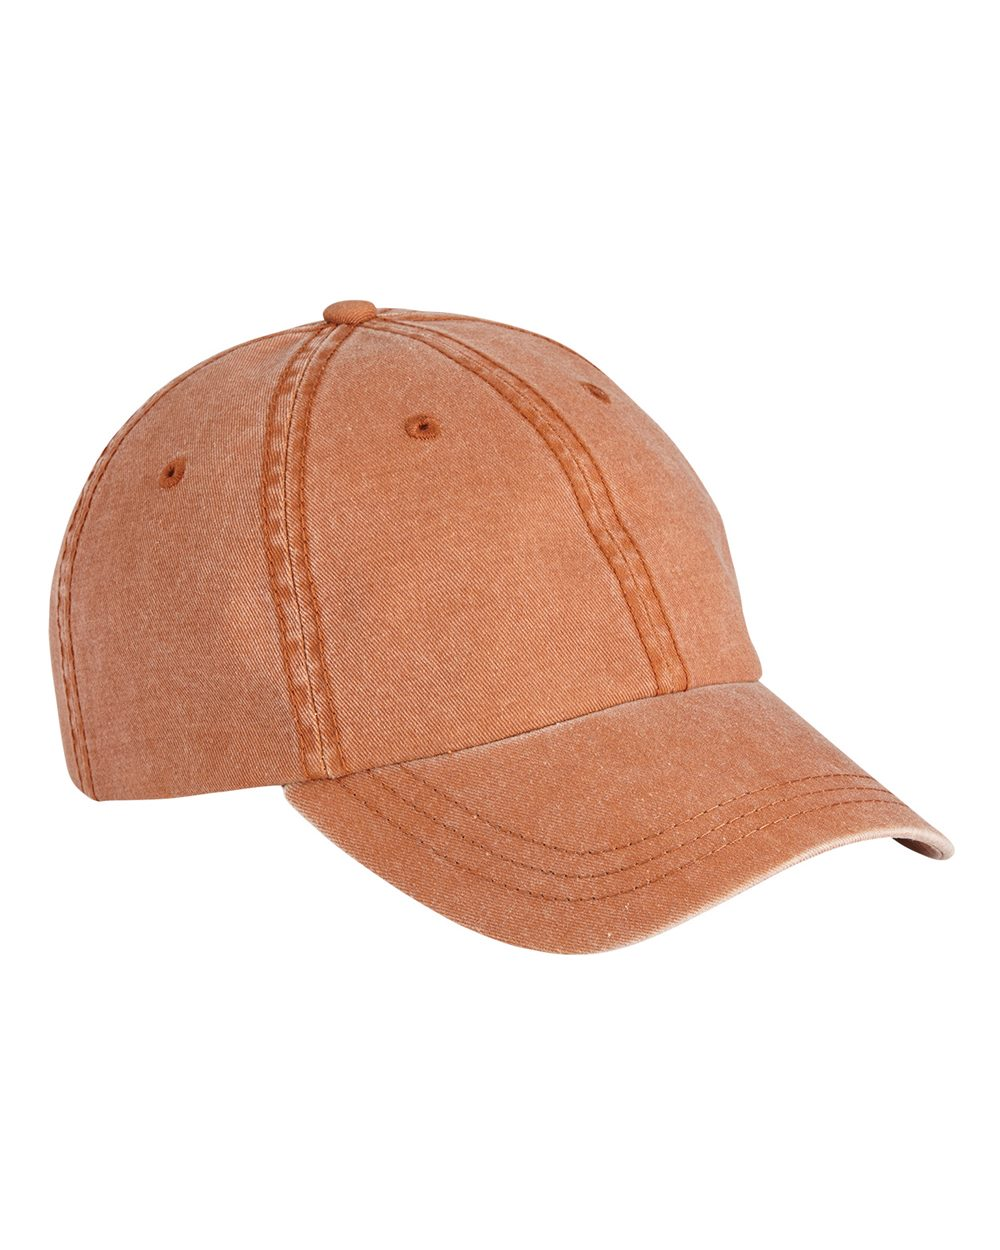 Sportsman SP500 - Pigment Dyed Cap